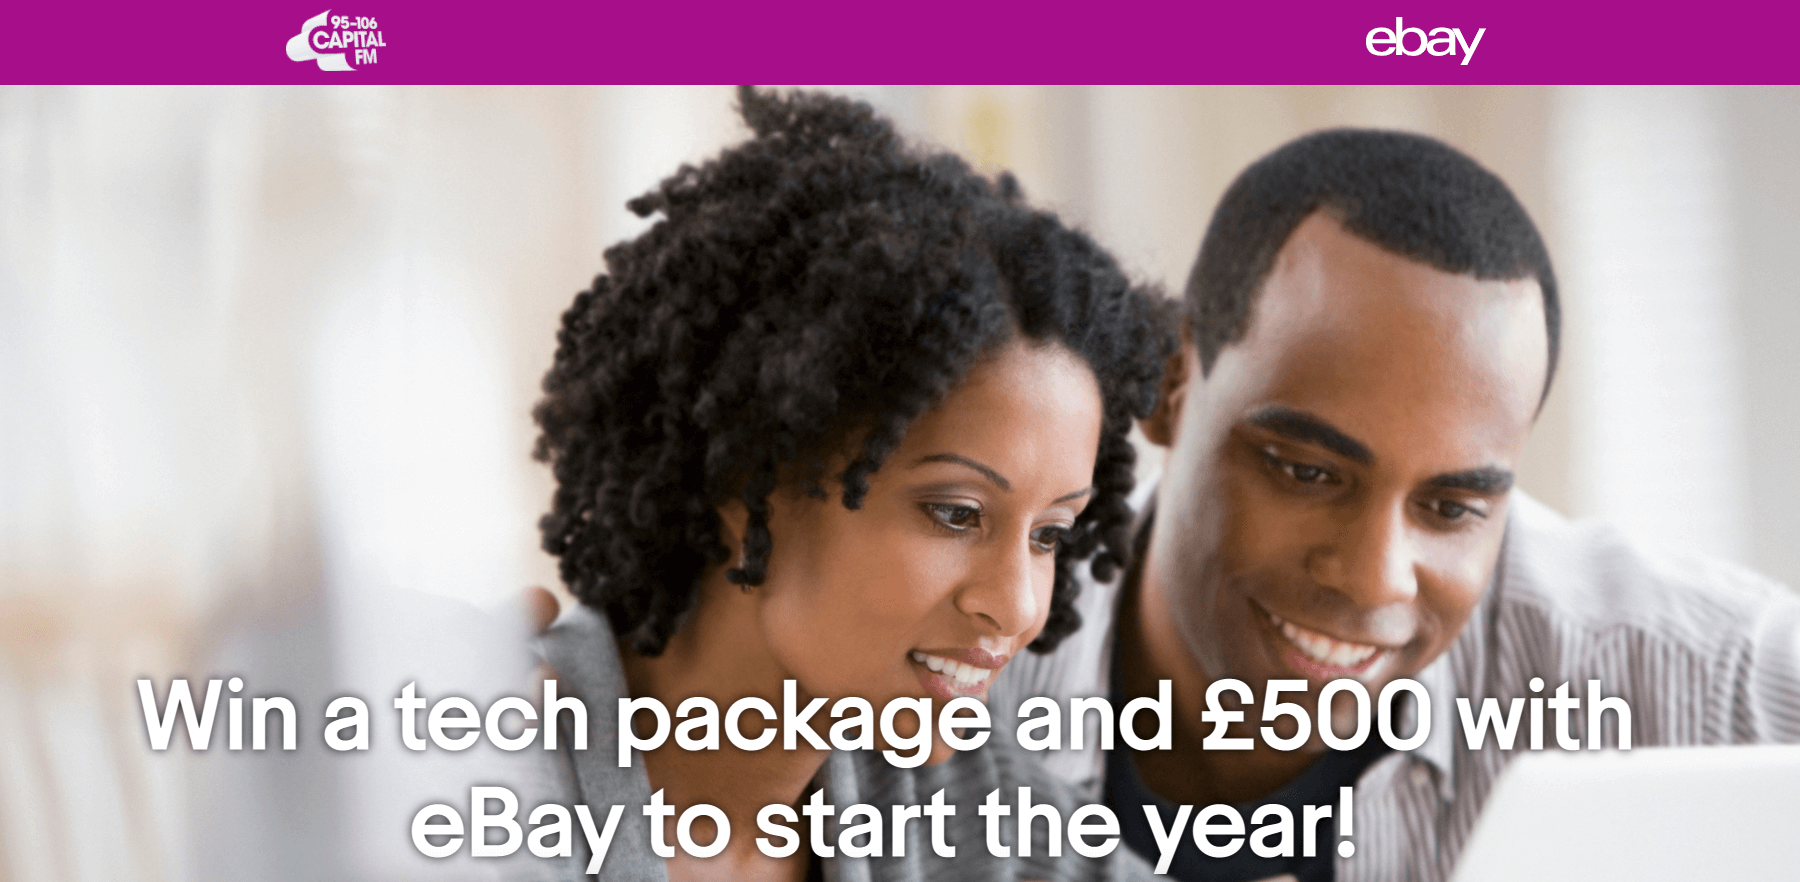 Win an iPhone XR, laptop and £500 with eBay from Capital FM